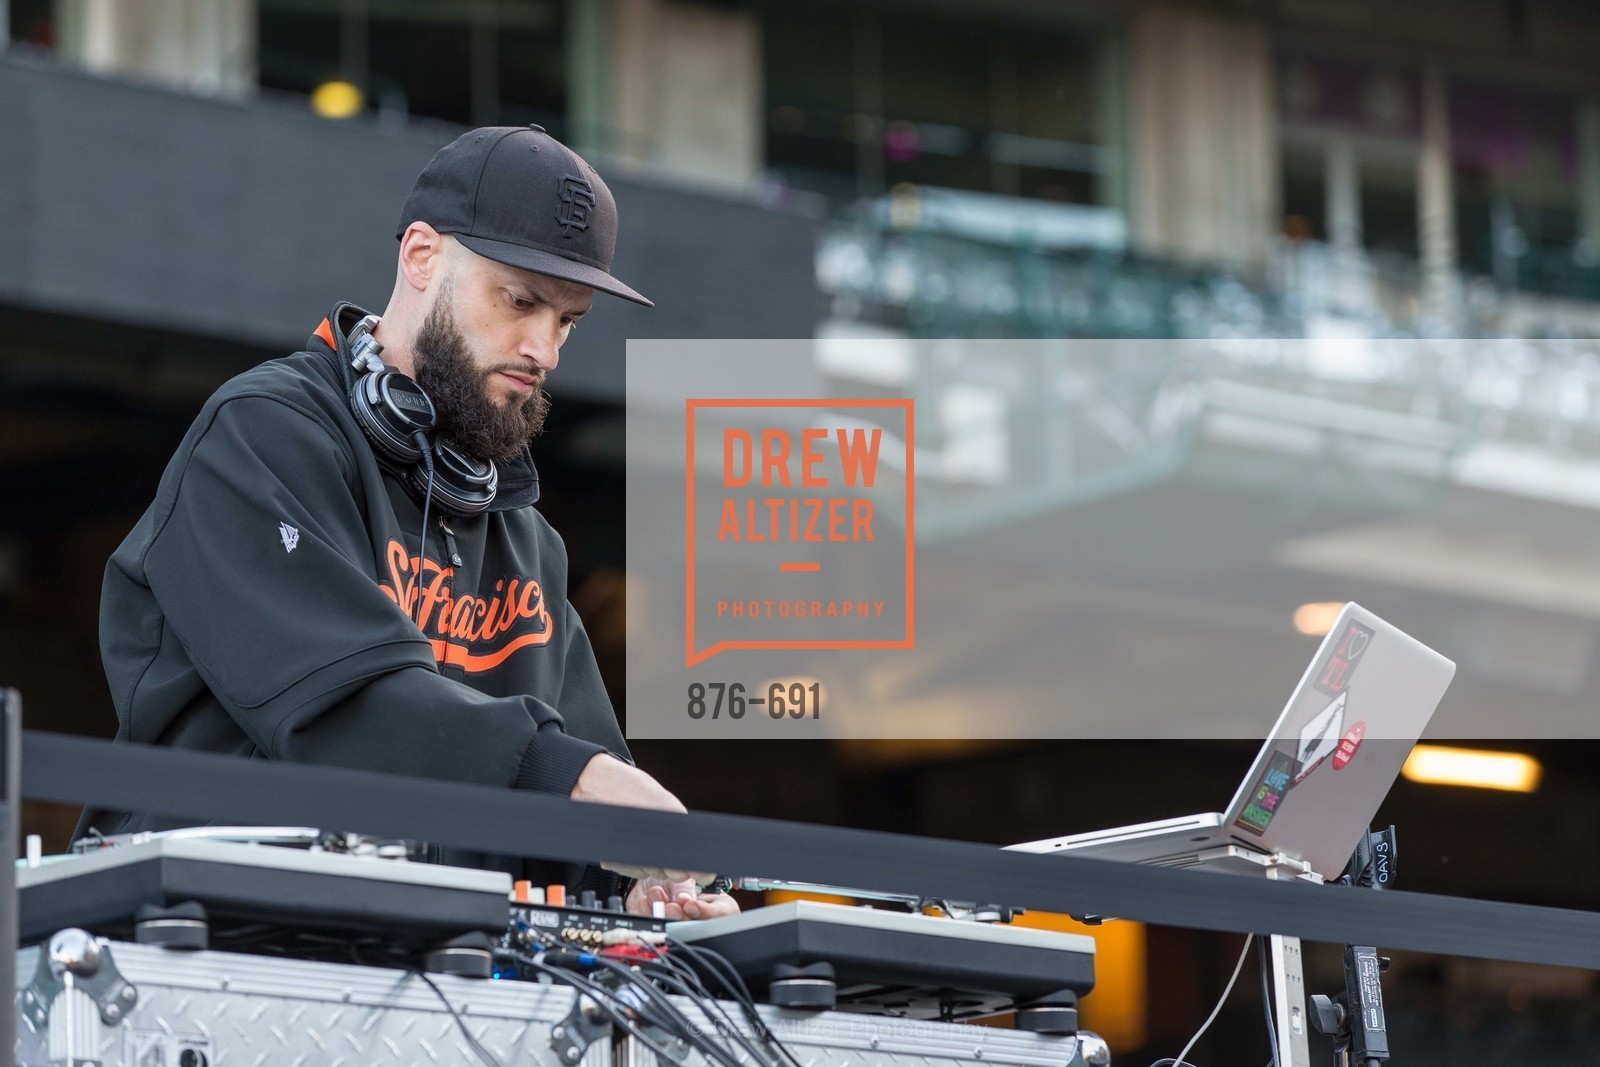 Dj, ST. FRANCIS FOUNDATION'S Knock It Out of the Park, US. AT&T Park, June 4th, 2015,Drew Altizer, Drew Altizer Photography, full-service agency, private events, San Francisco photographer, photographer california